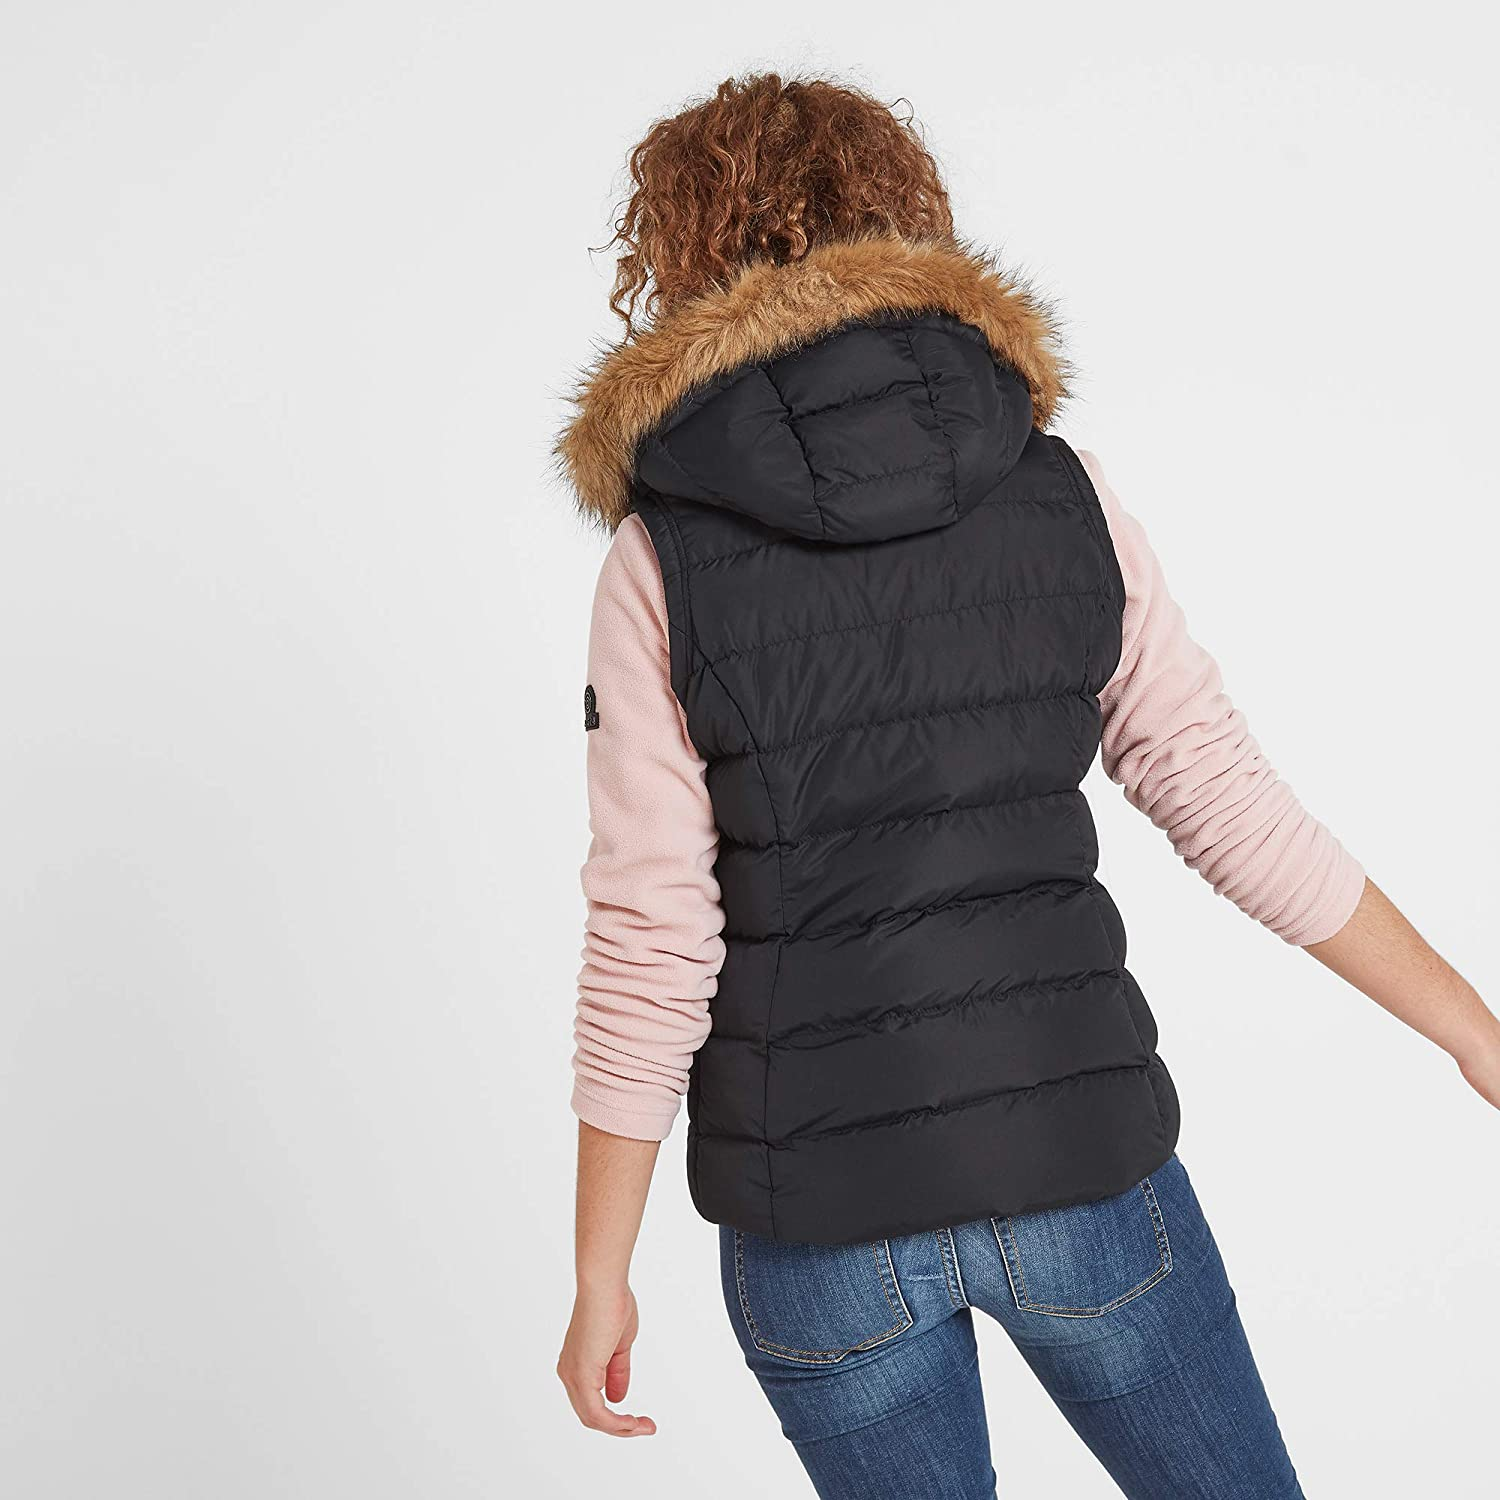 Adjustable Hood with Removable Faux Fur Trim TOG 24 Yeadon Womens Hooded Gilet Warm Lightweight Quilted Padded Wind Resistant Vest Jacket Bodywarmer with Insulated Thermal Filling Ideal Mid Layer